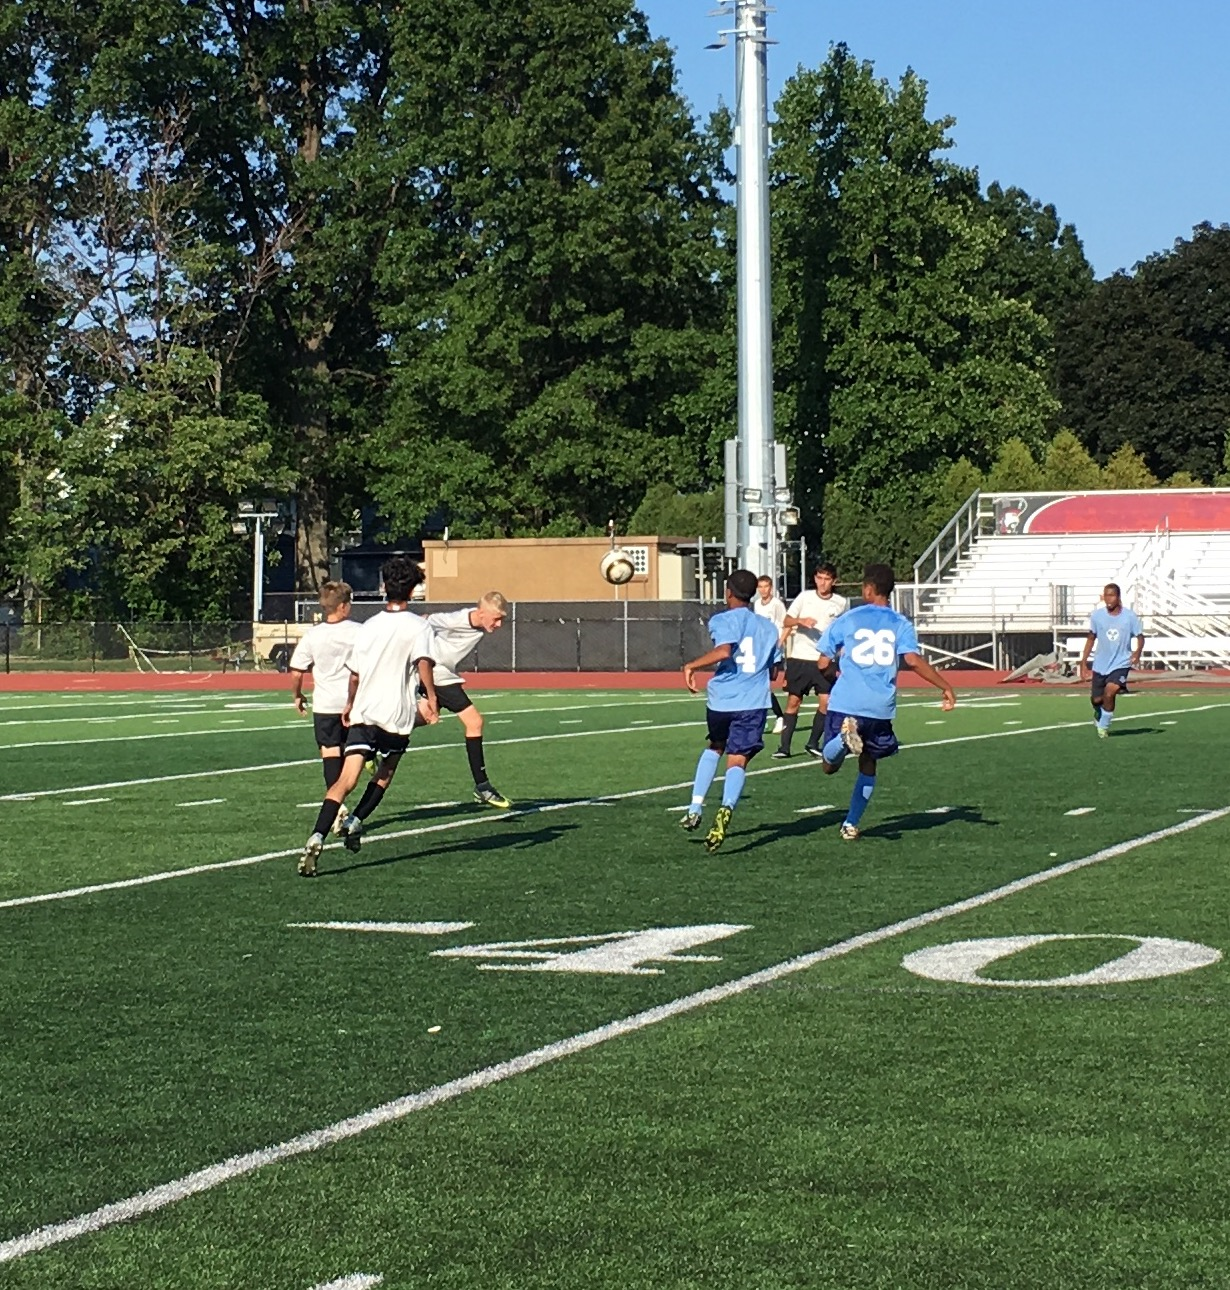 Nate Keeling heads the ball during the Benedictine scrimmage.